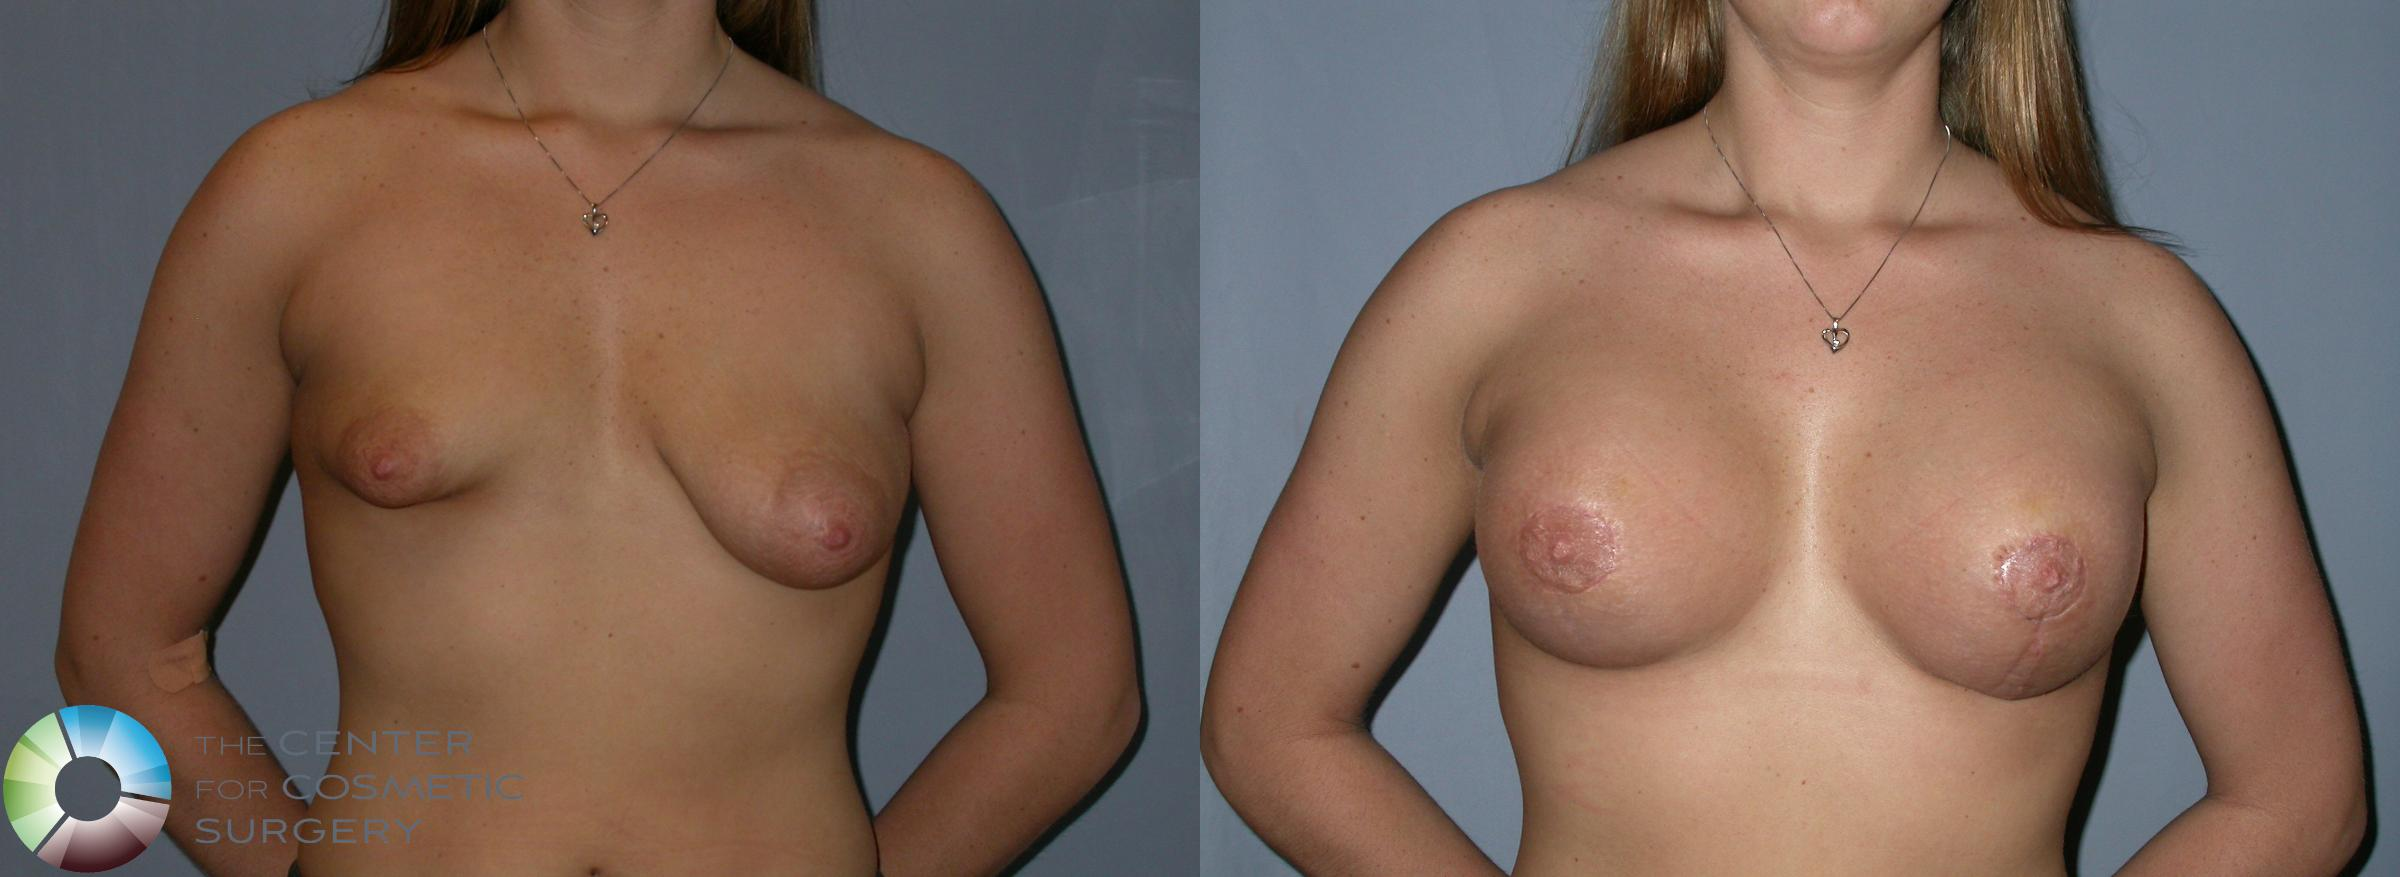 Breast Lift Case 181 Before & After View #1 | Golden, CO | The Center for Cosmetic Surgery